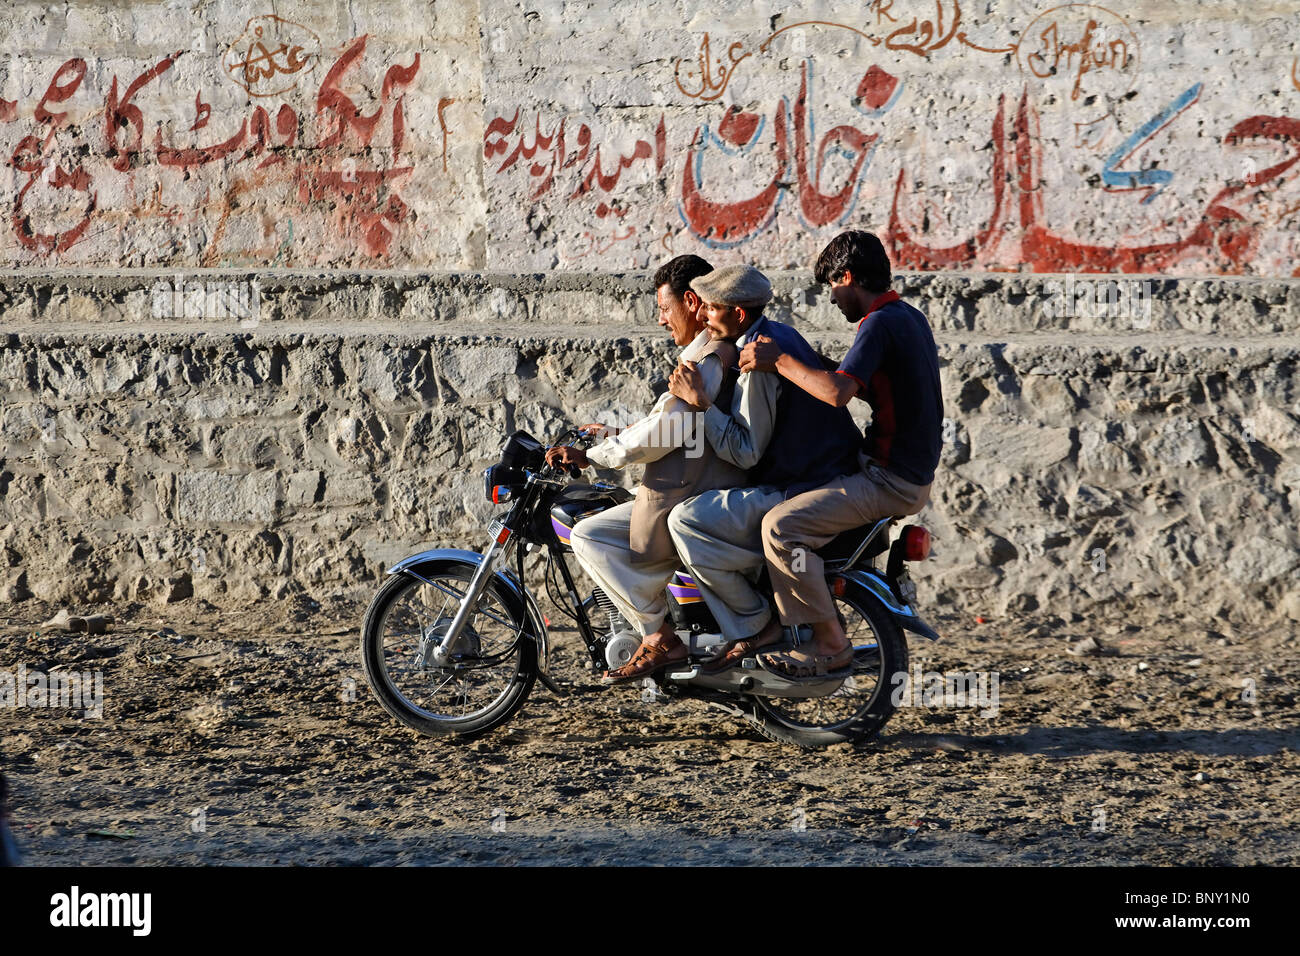 Pakistan - Gilgit - three men on a motorbike Stock Photo